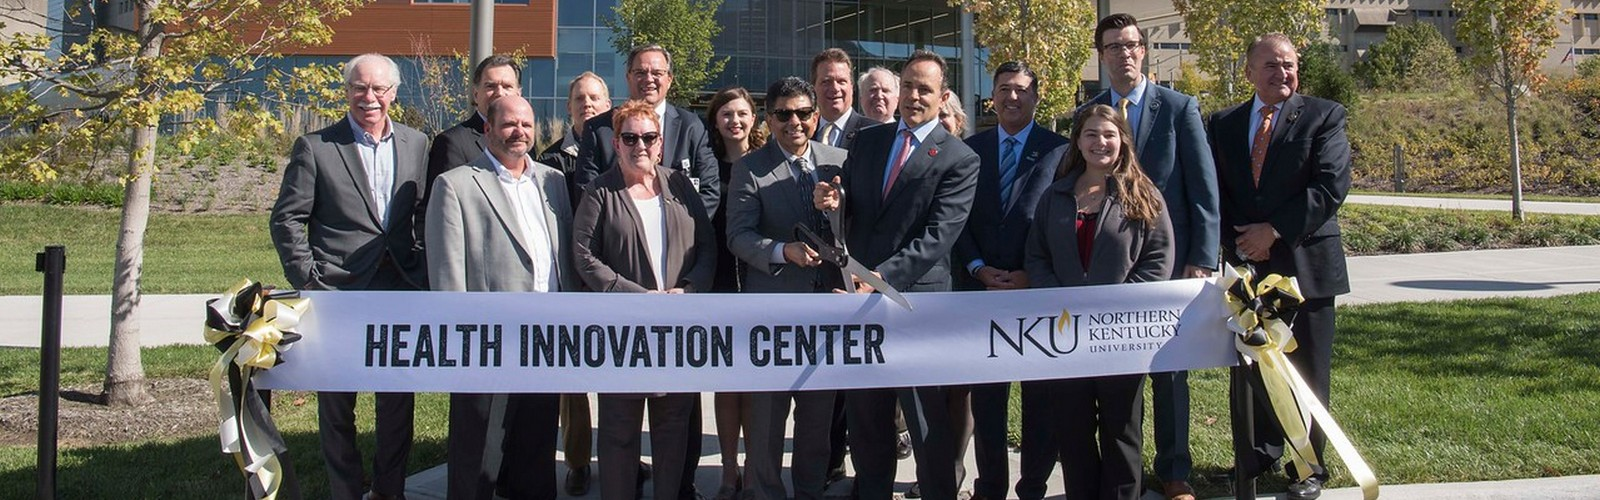 NKU President Ashish Vaidya and Kentucky Gov. Matt Bevin lead the ribbon-cutting for NKU's Health Innovation Center. <span class='image-credits'></span>